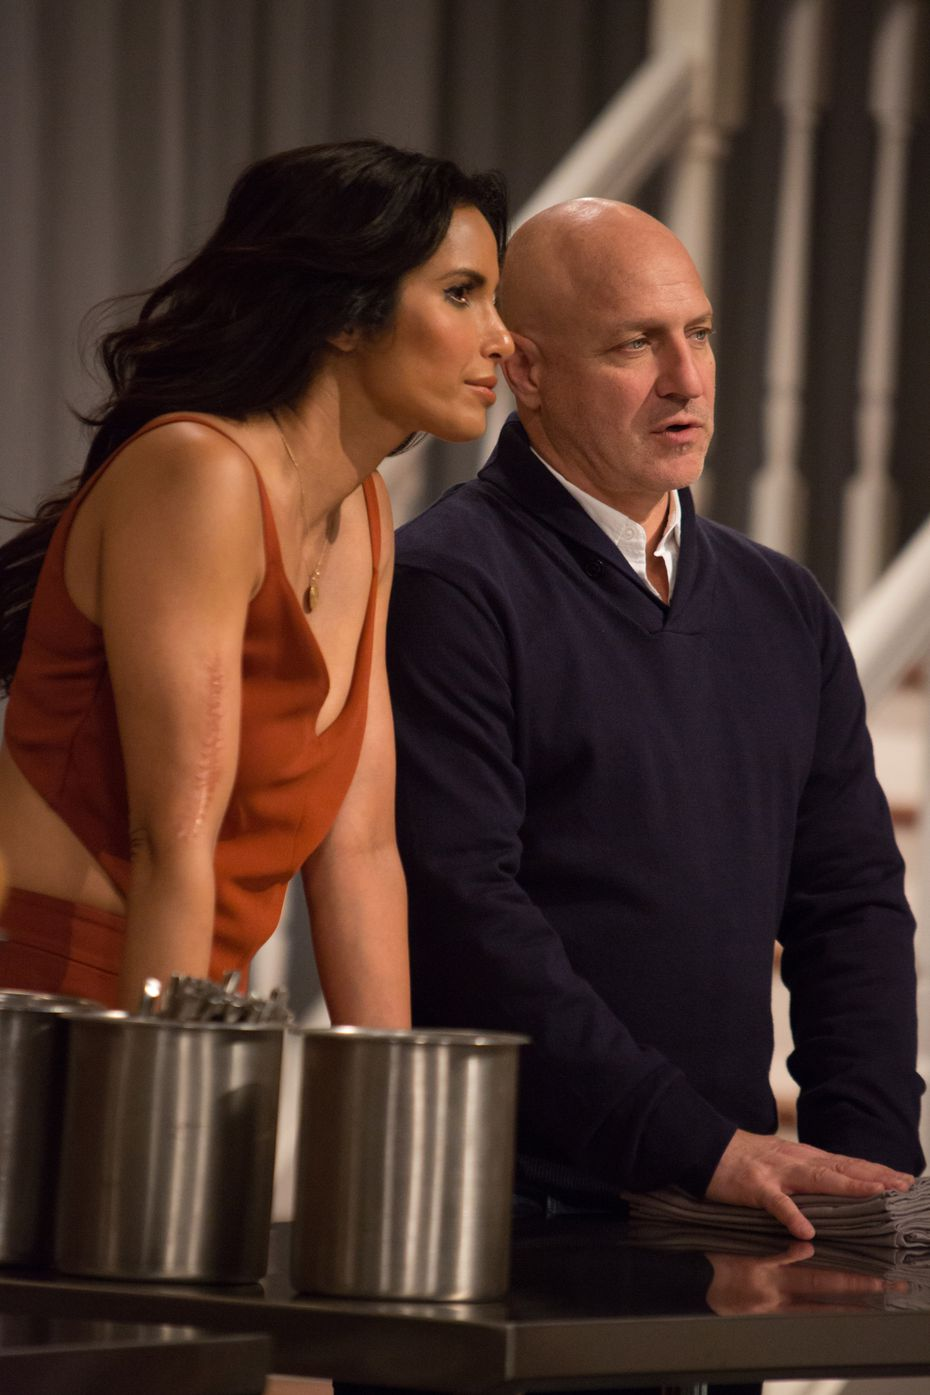 'Top Chef' host Padma Lakshmi and head judge Tom Colicchio watch as the new class of Season 14 chefs engage in their first cookoff.